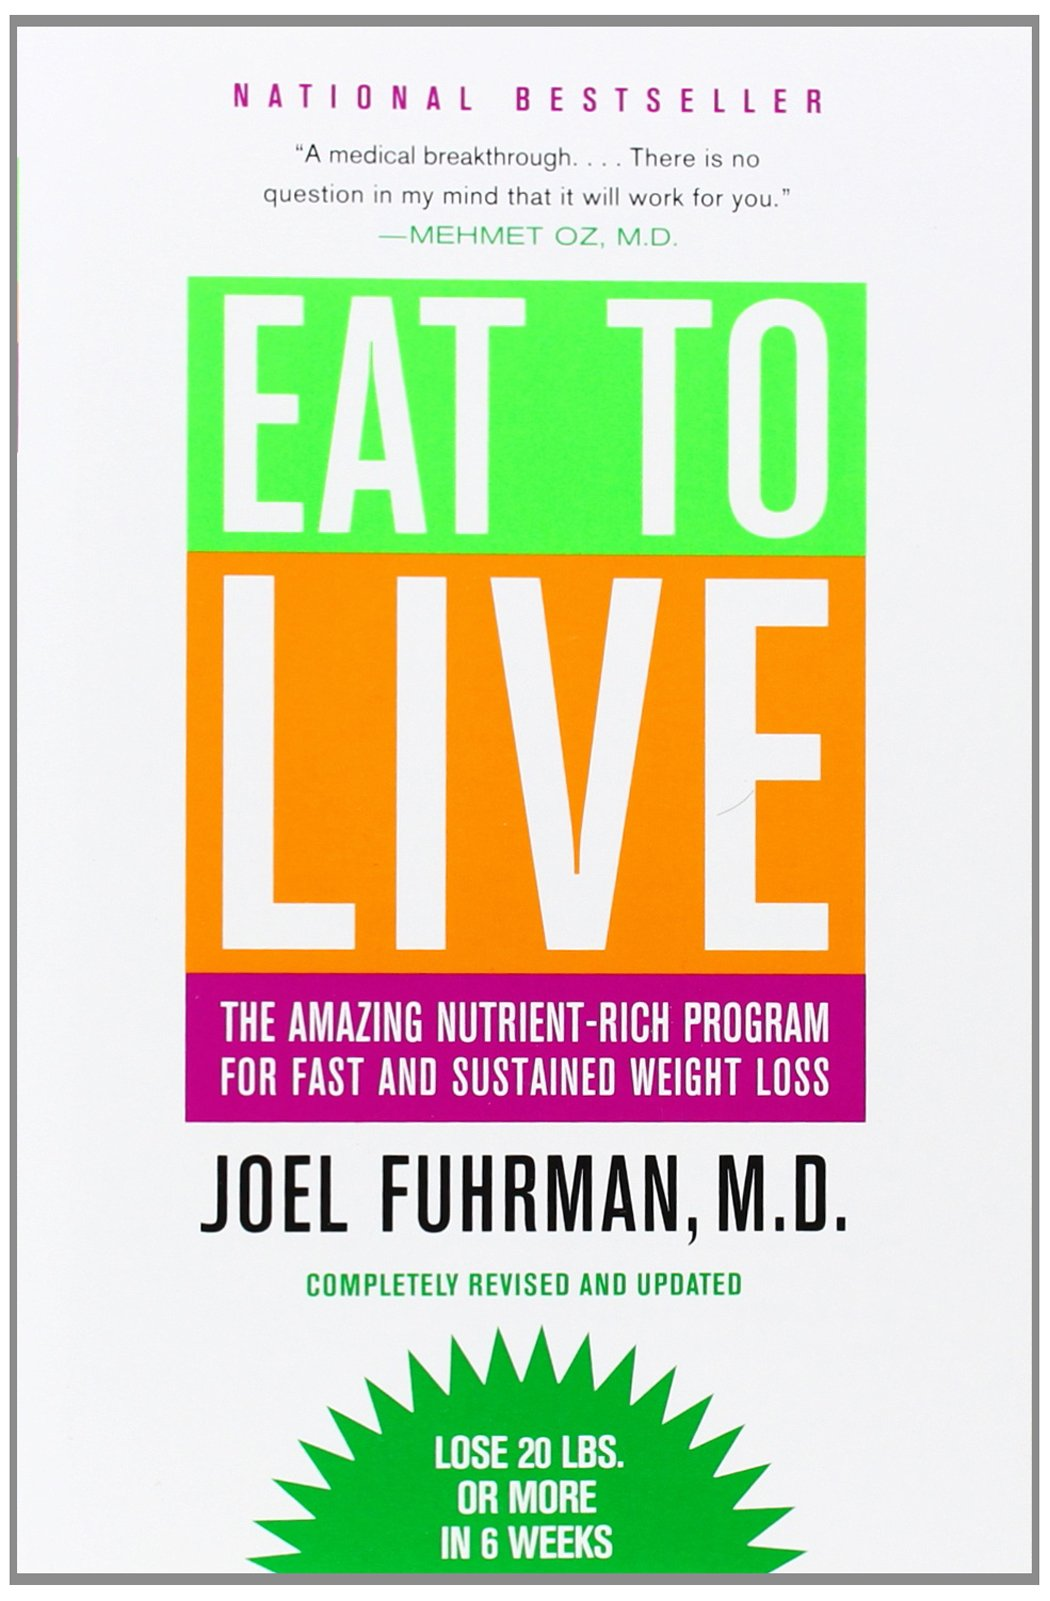 """eat to live - by Dr. Joel Fuhrman, M.D.In this new edition, which incorporates the latest scientific nutritional data, Fuhrman's restrictive diet plan is designed for clinically overweight people who suffer from a spectrum of lifestyle/obesity-induced conditions like diabetes and heart disease and need to drop a significant amount of weight fast—about 20 pounds in the first six weeks. The basis of Fuhrman's program is Nutrient Density, expressed by the simple formula health equals nutrients divided by calories. Fuhrman's """"secret"""" to optimum health and permanent weight control is giving the body only what it needs. An aggressive six-week vegetarian plan segues into a regimen that includes a limited amount of animal products, like lean fish or egg whites once a week. Although proven and sound, this guidebook is not for someone who wants to lose those last 10 pounds or fit into her wedding dress; this is a serious undertaking for dieters whose umpteen previous efforts have failed and whose health is endangered."""